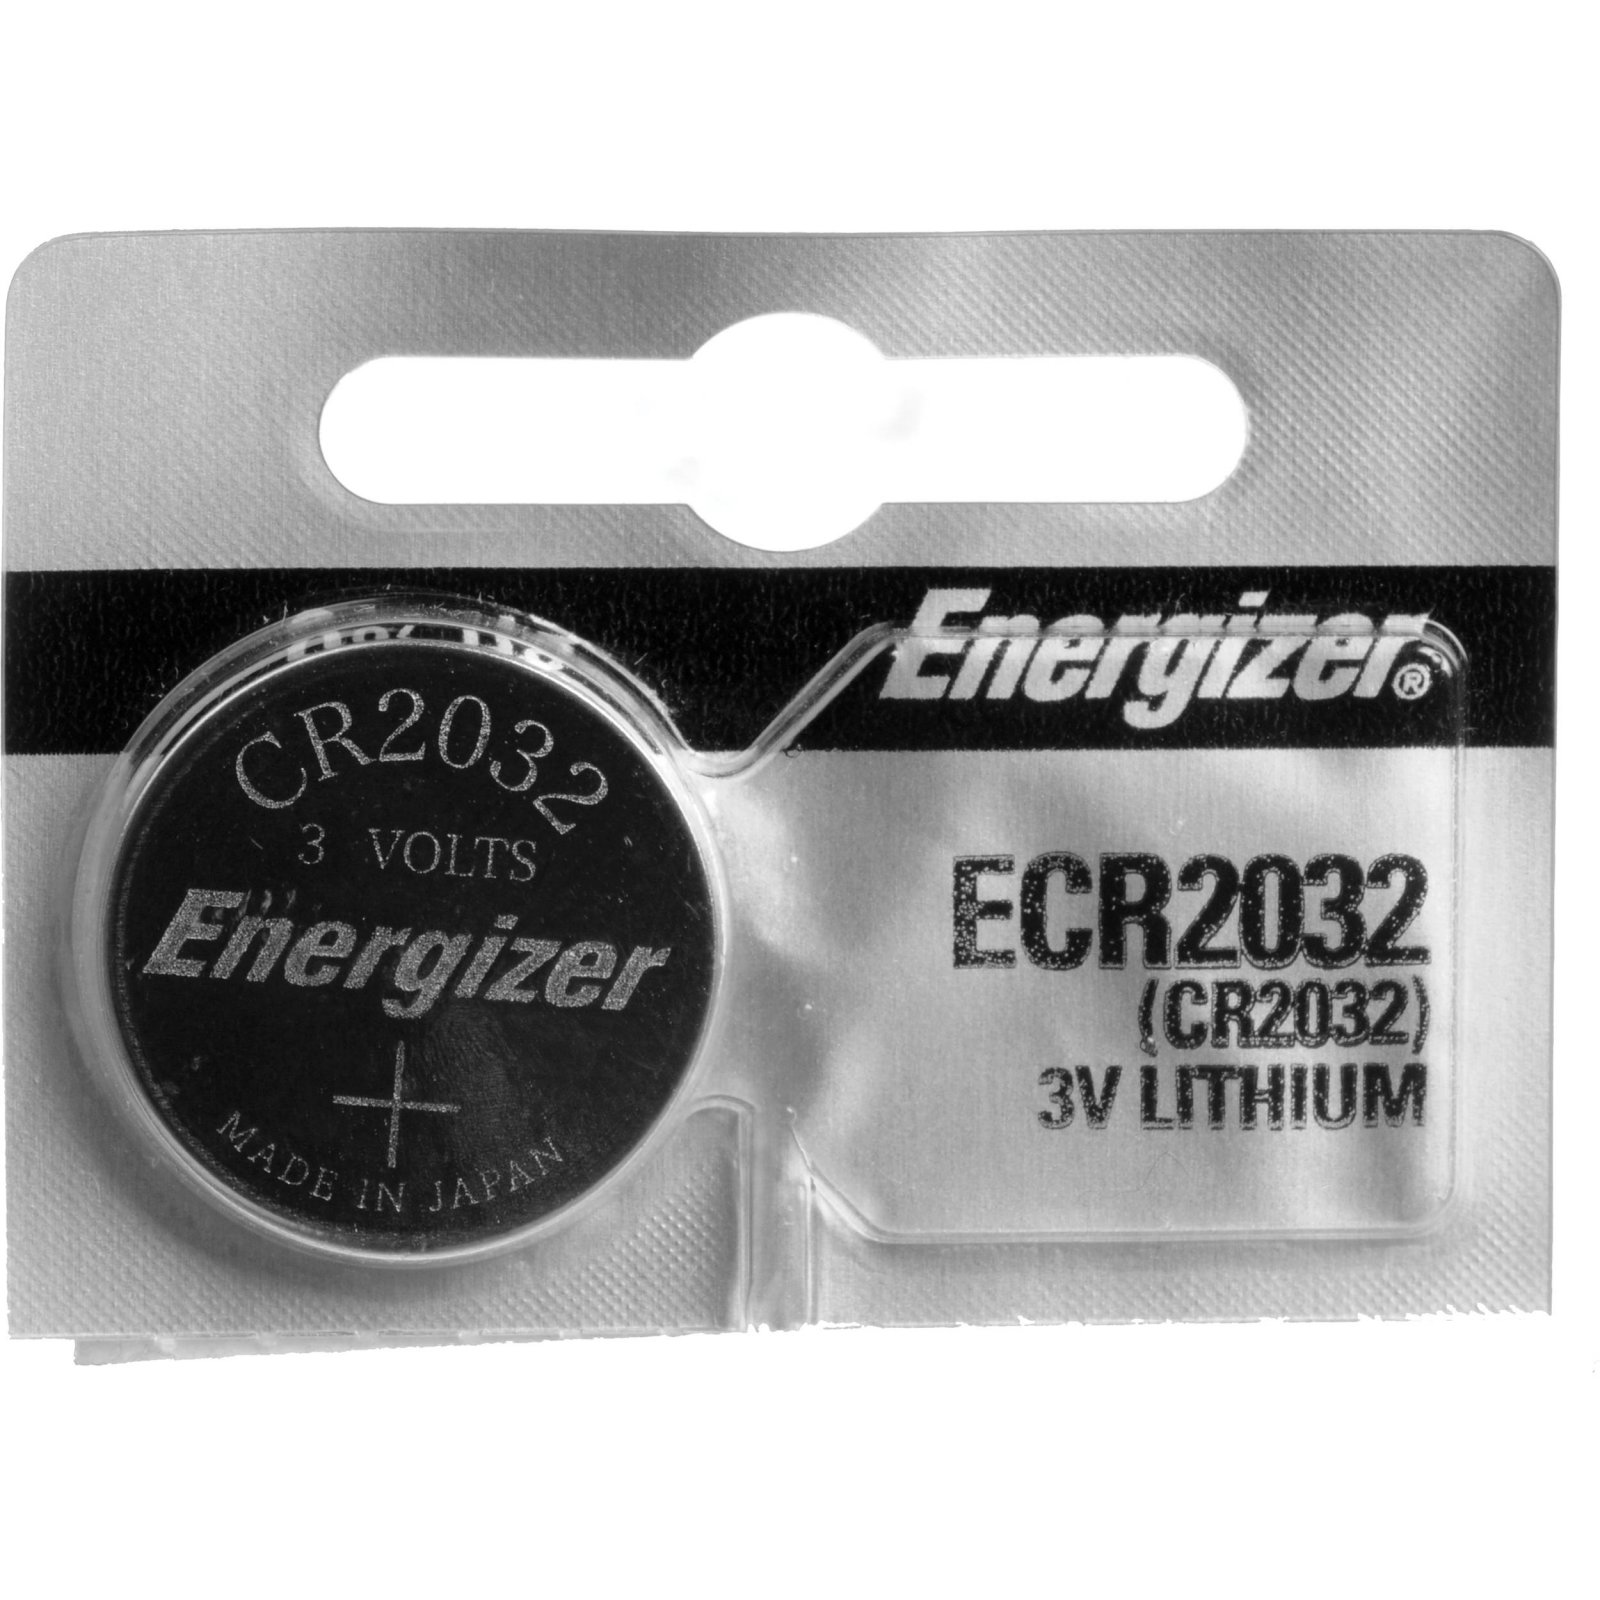 Energizer ECR2032 Battery EACH